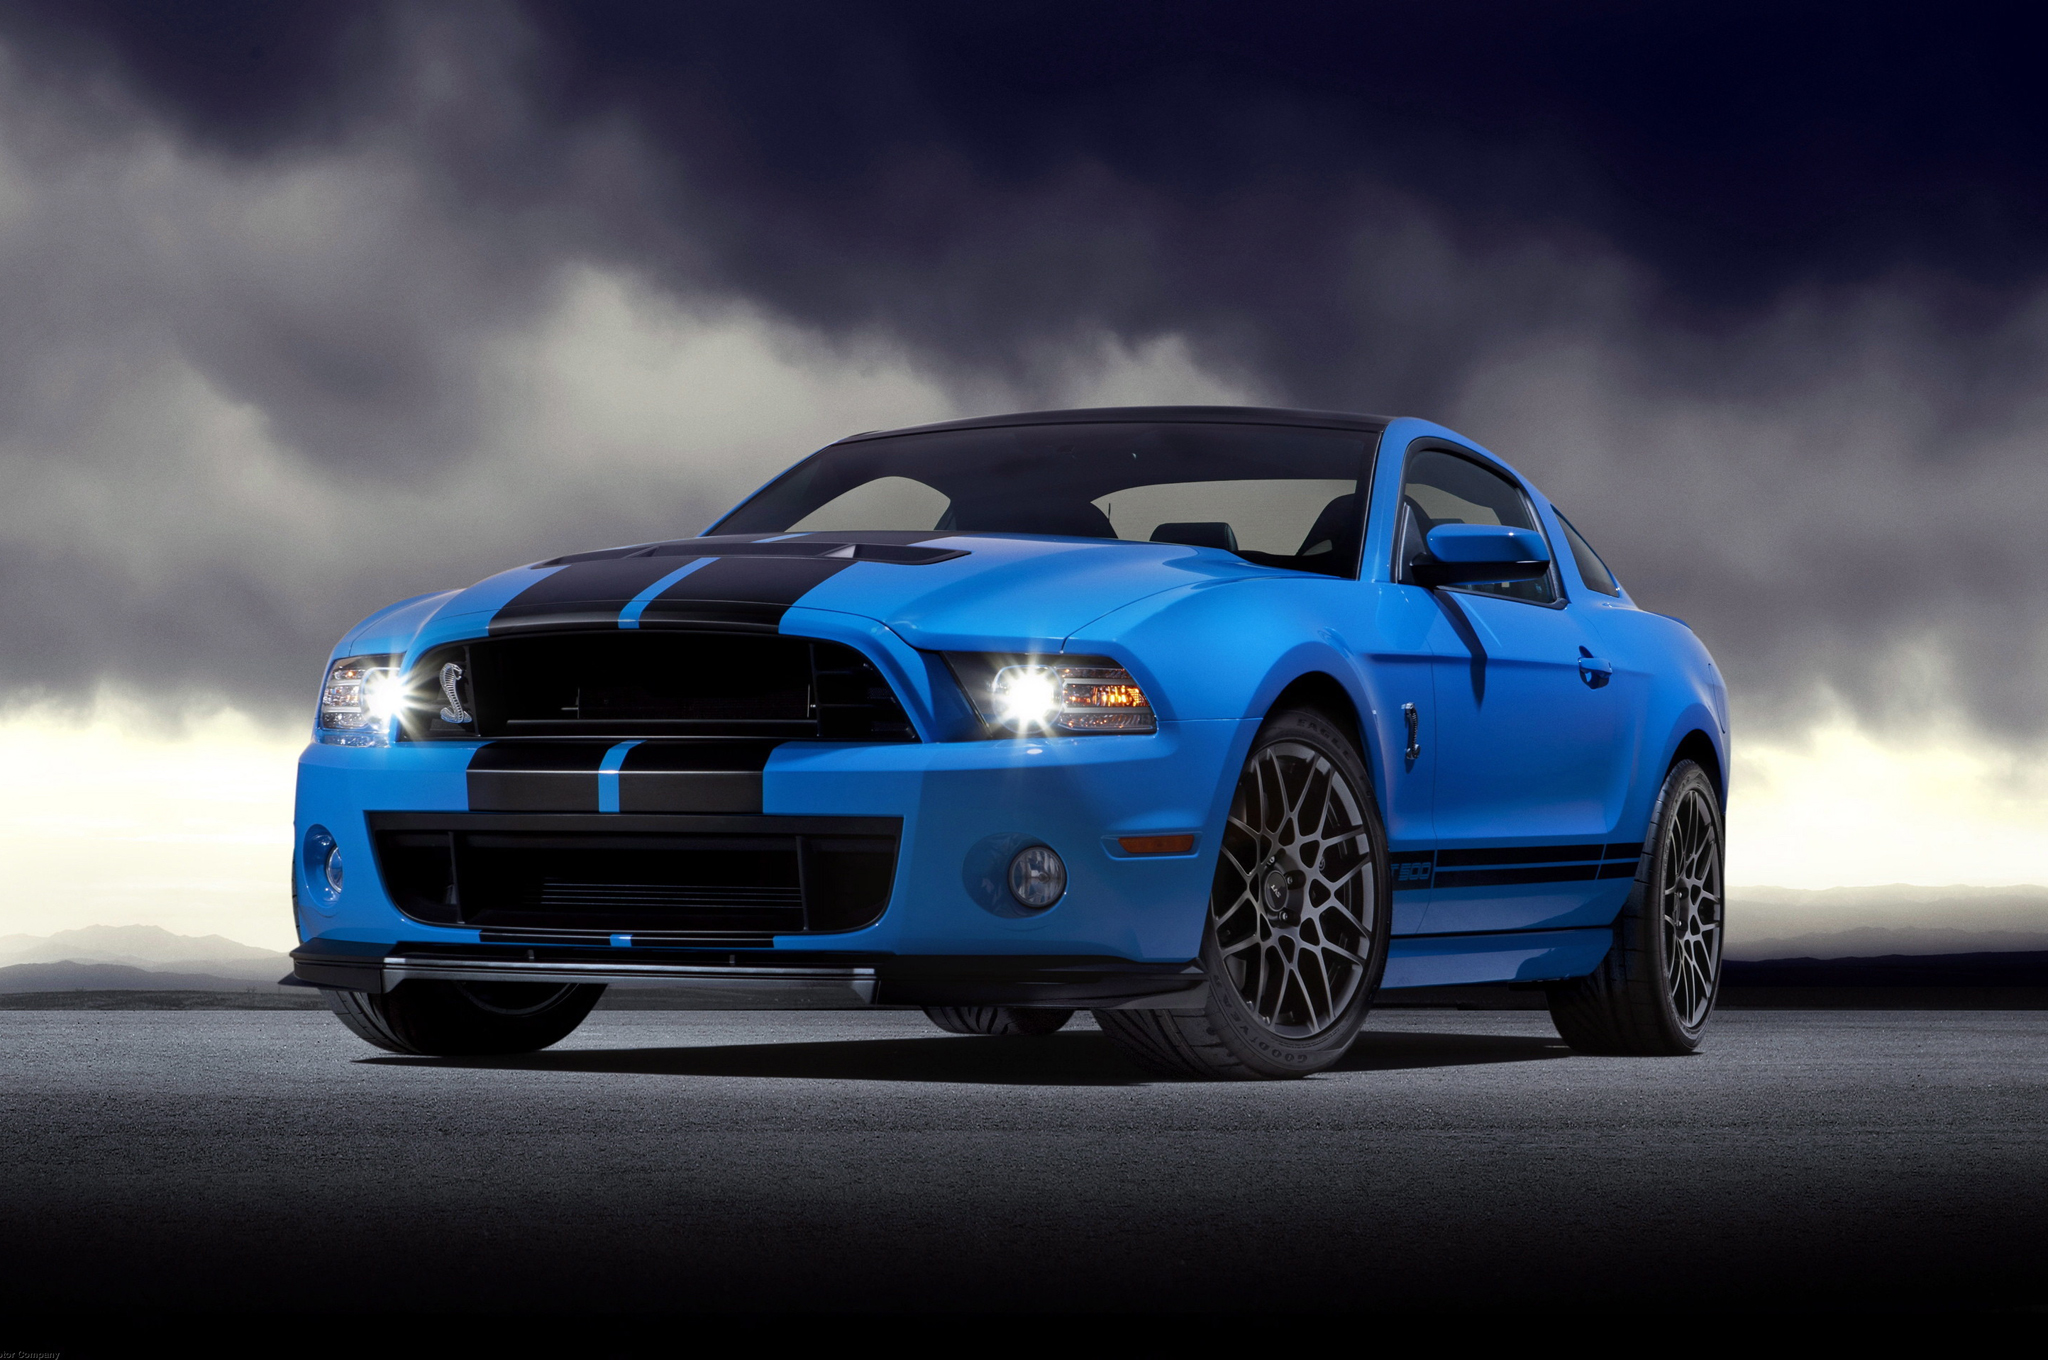 2013 Ford Shelby Gt500 #18